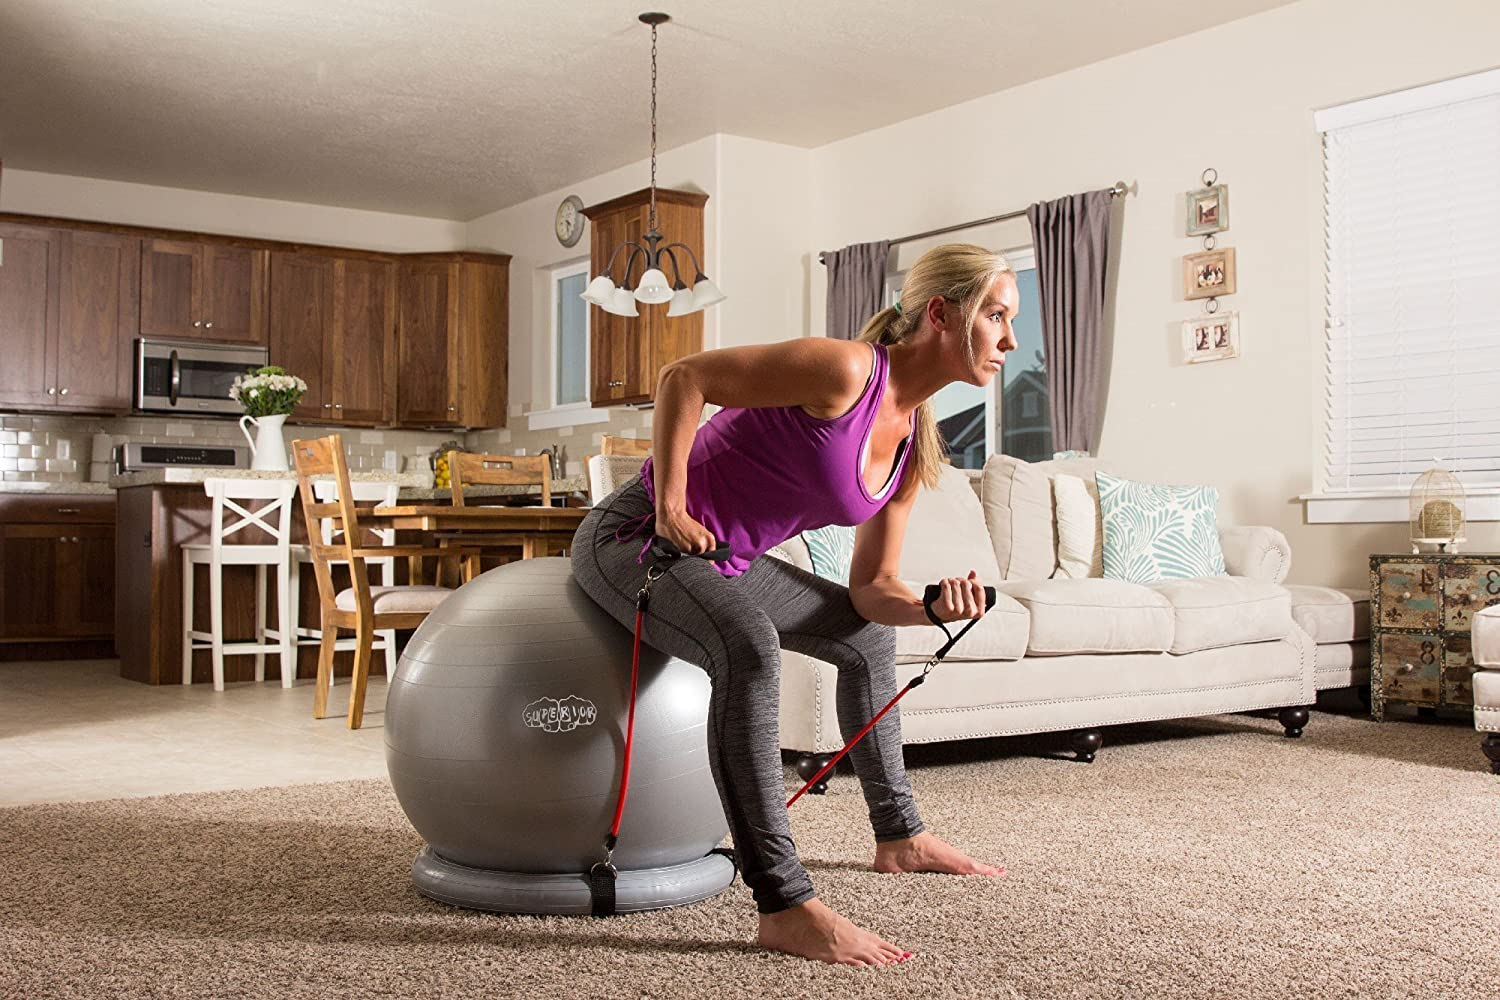 Exercise ball workout for women